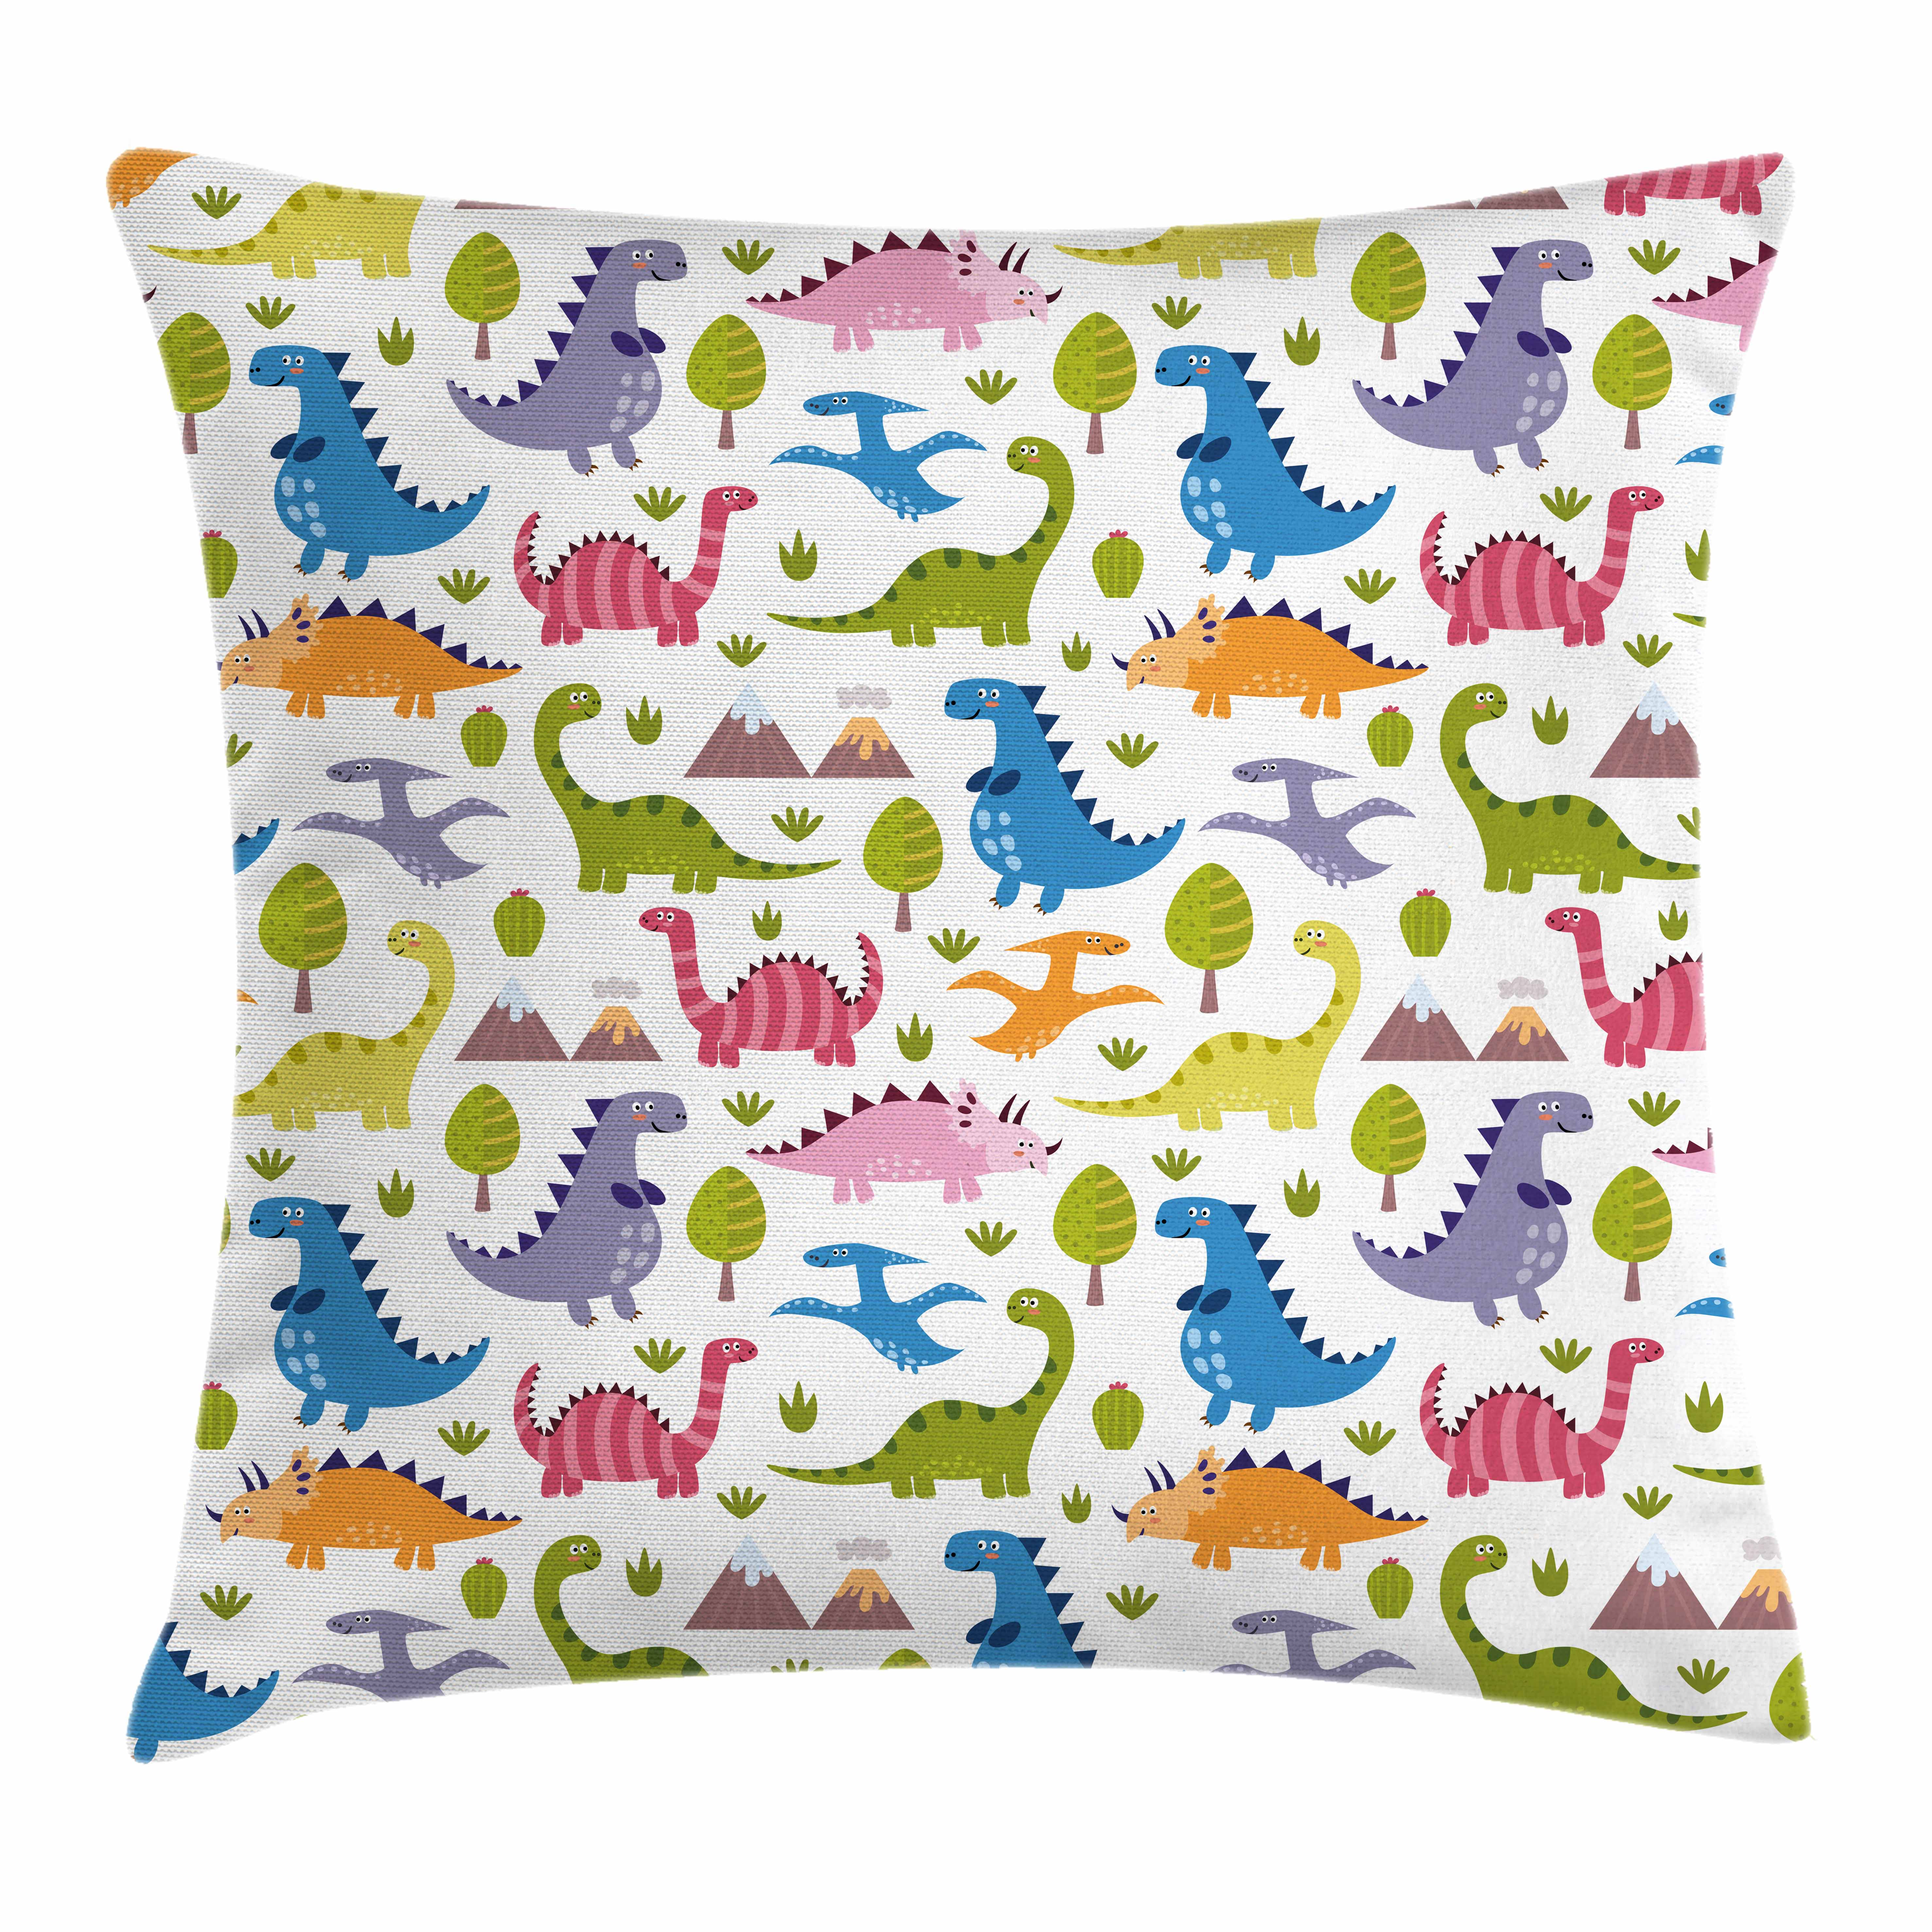 Kids Throw Pillow Cushion Cover, Cartoon Style Colorful Lovely Dinosaurs T-Rex Triceratops Prehistoric Reptile Wildlife, Decorative Square Accent Pillow Case, 18 X 18 Inches, Multicolor, by Ambesonne